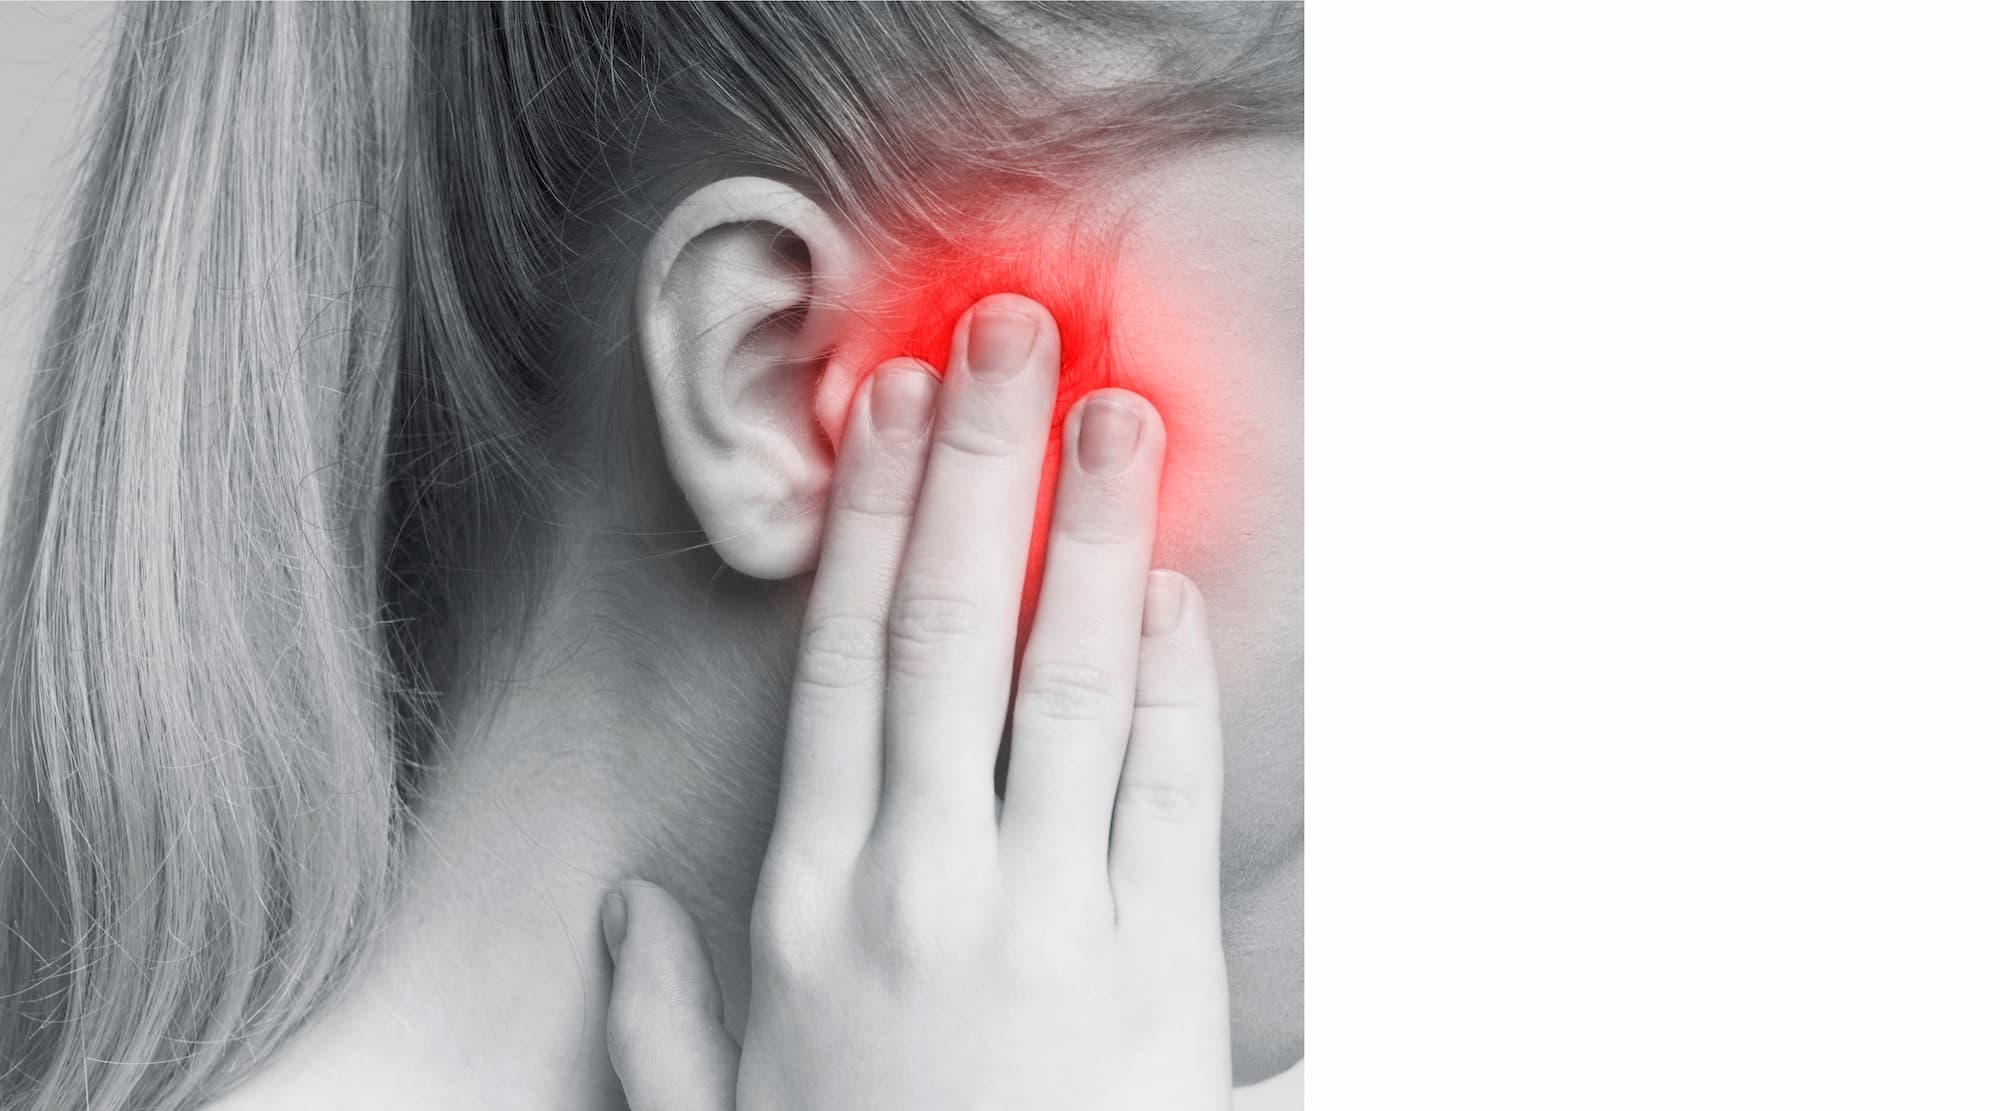 Memorial Hearing Treatment for Hyperacusis and Misophonia